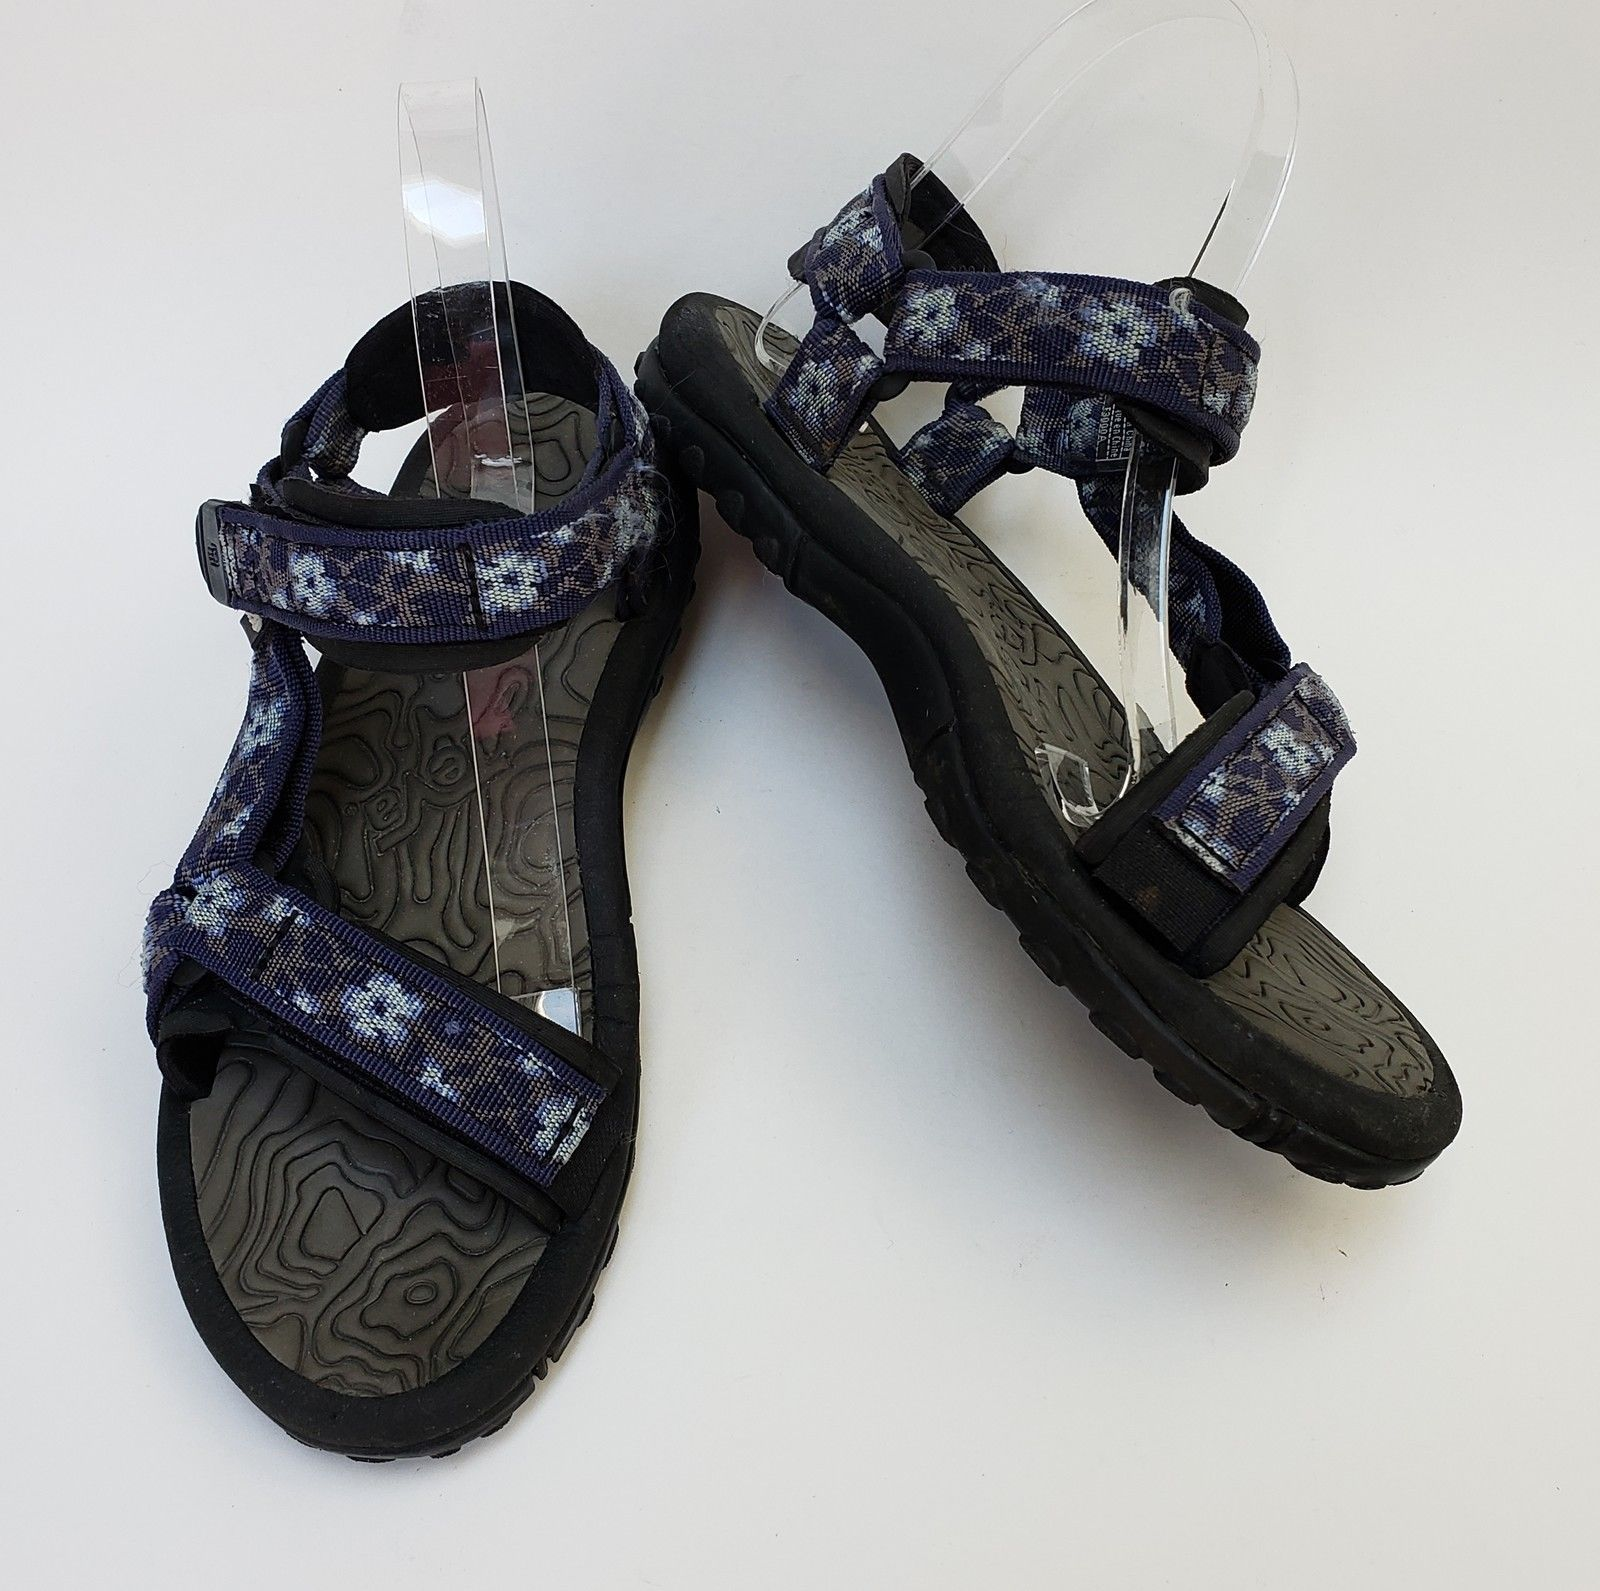 5dbc632d7b94 Teva Shoes Sandals Multi-Color Fabric Sandals Womens Size US 8   EU 40 -  £49.01 GBP